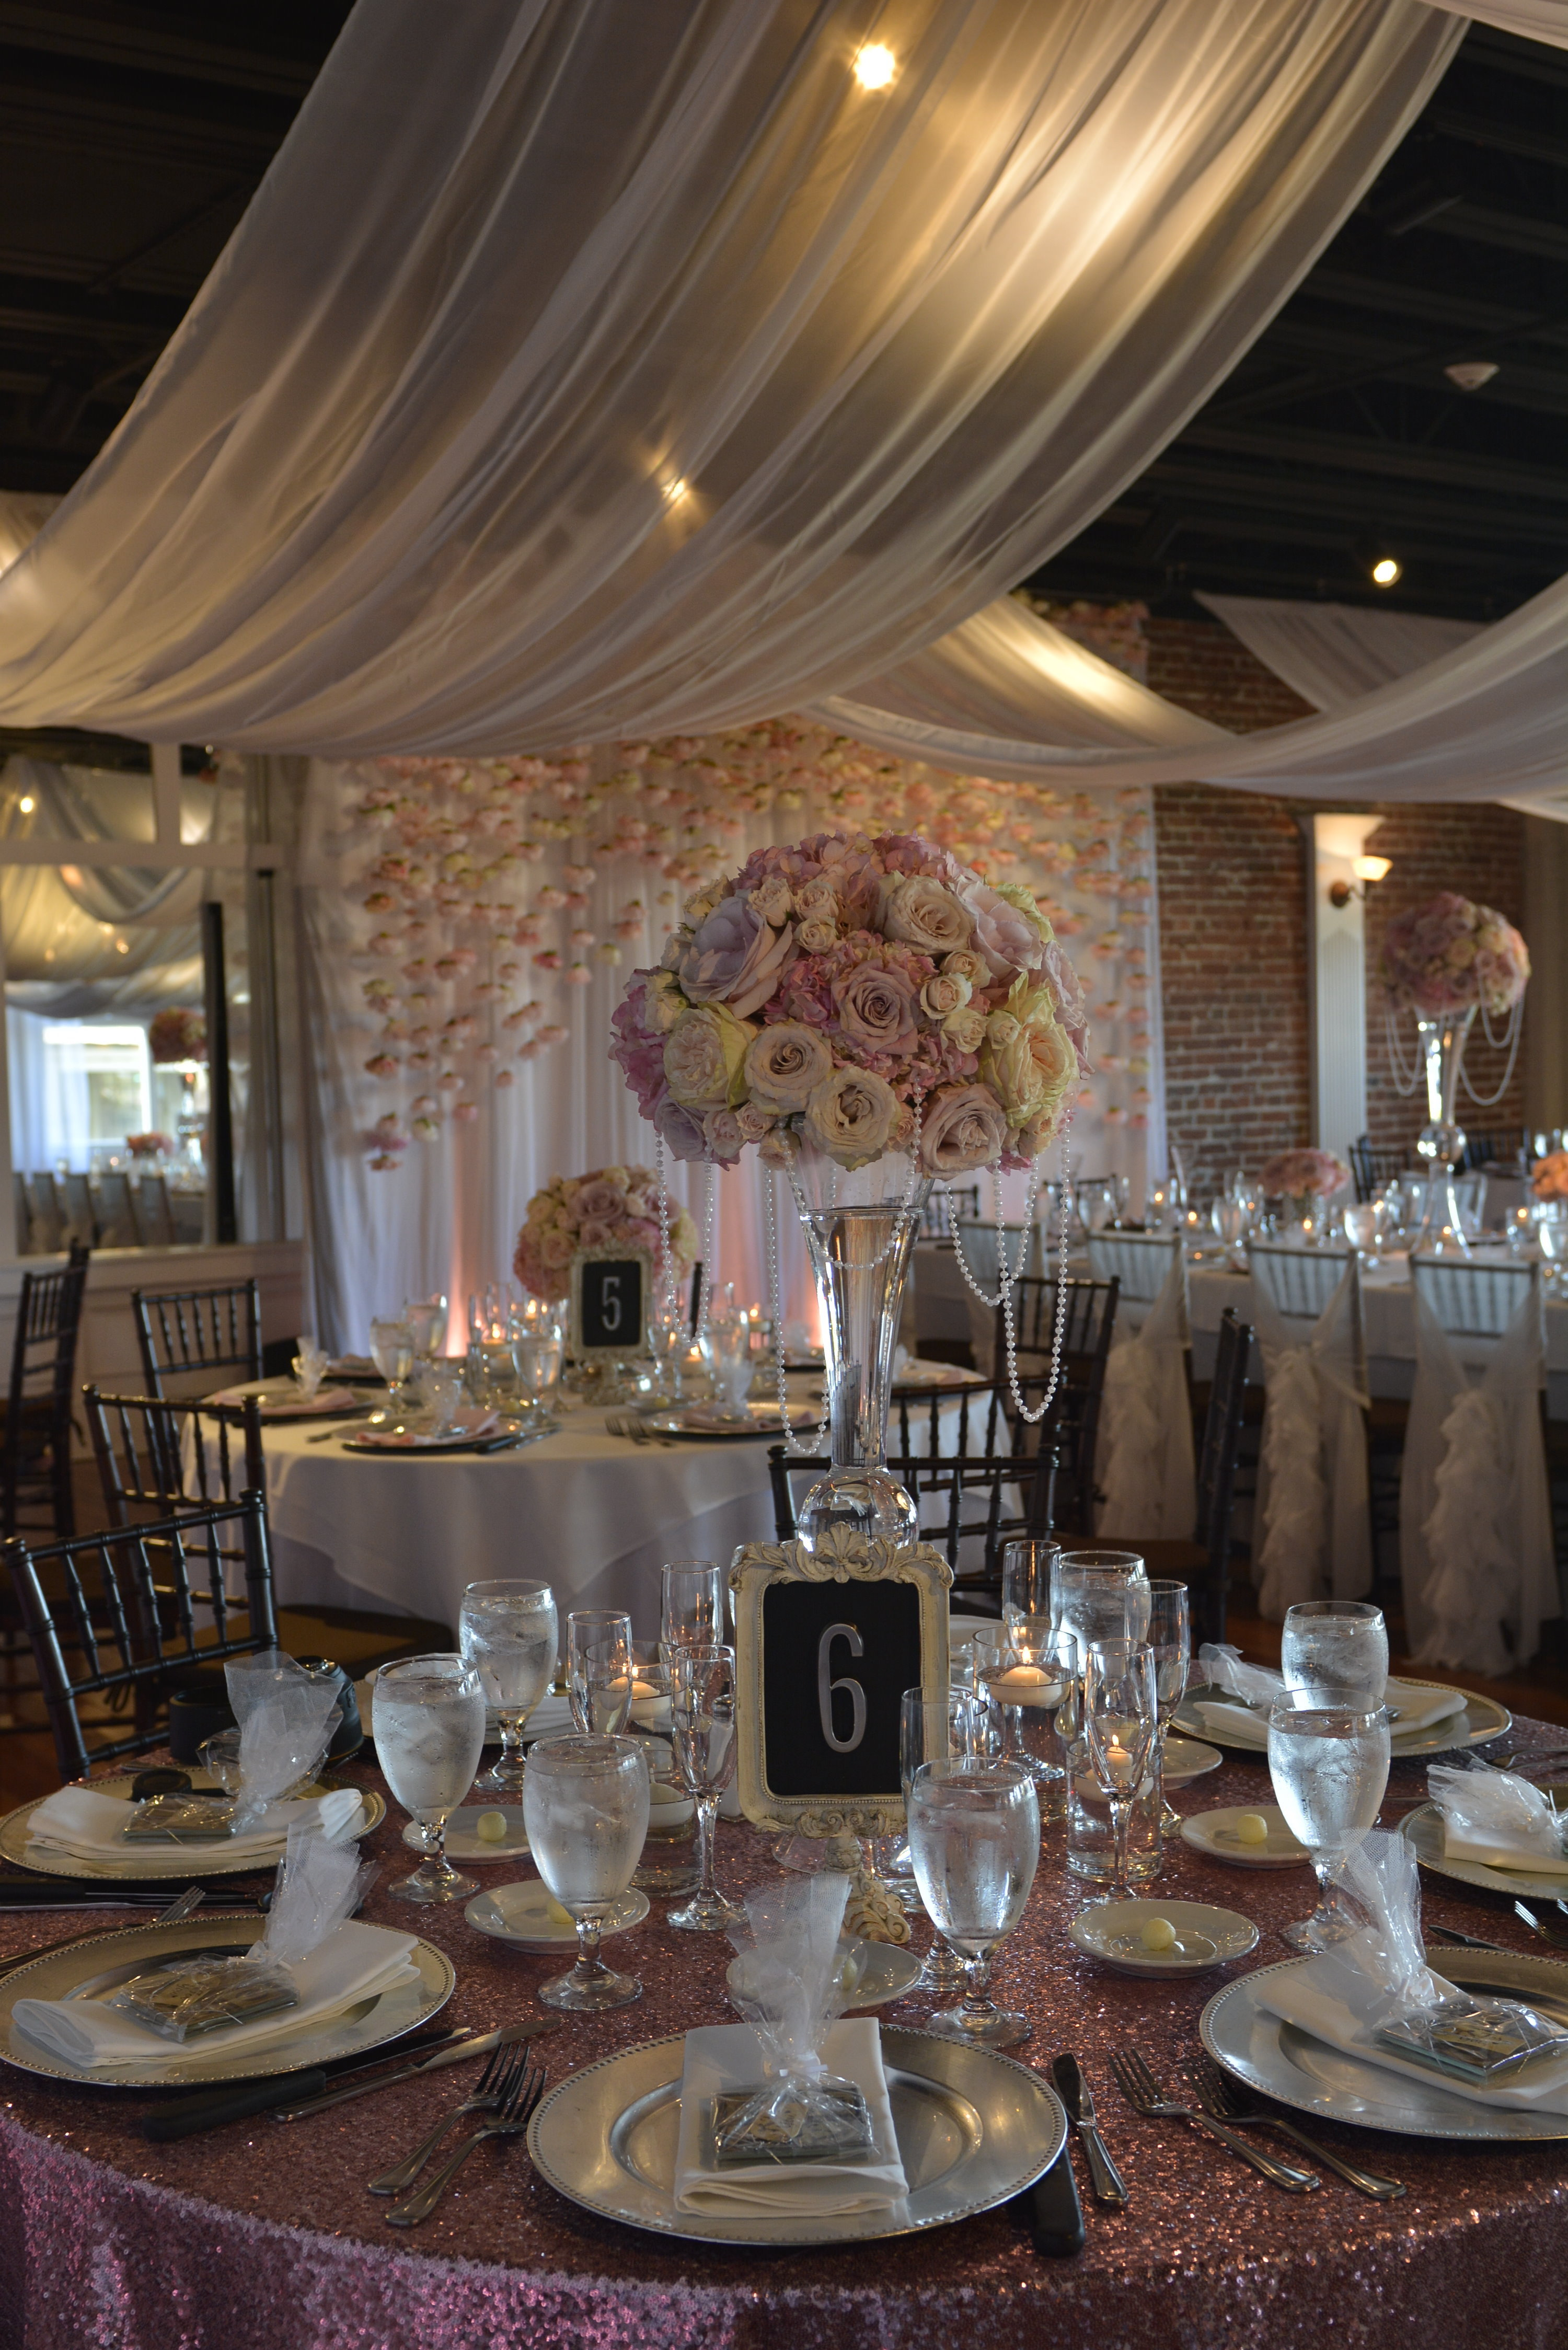 Wedding Decor Rentals At The White Room St Augustine Fl. Cool Home Decor. Birthday Party Table Decorations. Beach Theme Decor Ideas. Spanish Party Decorations. Silver Party Decorations. Bookcase For Kids Room. Room Decor Target. Cheap Rooms In Atlantic City